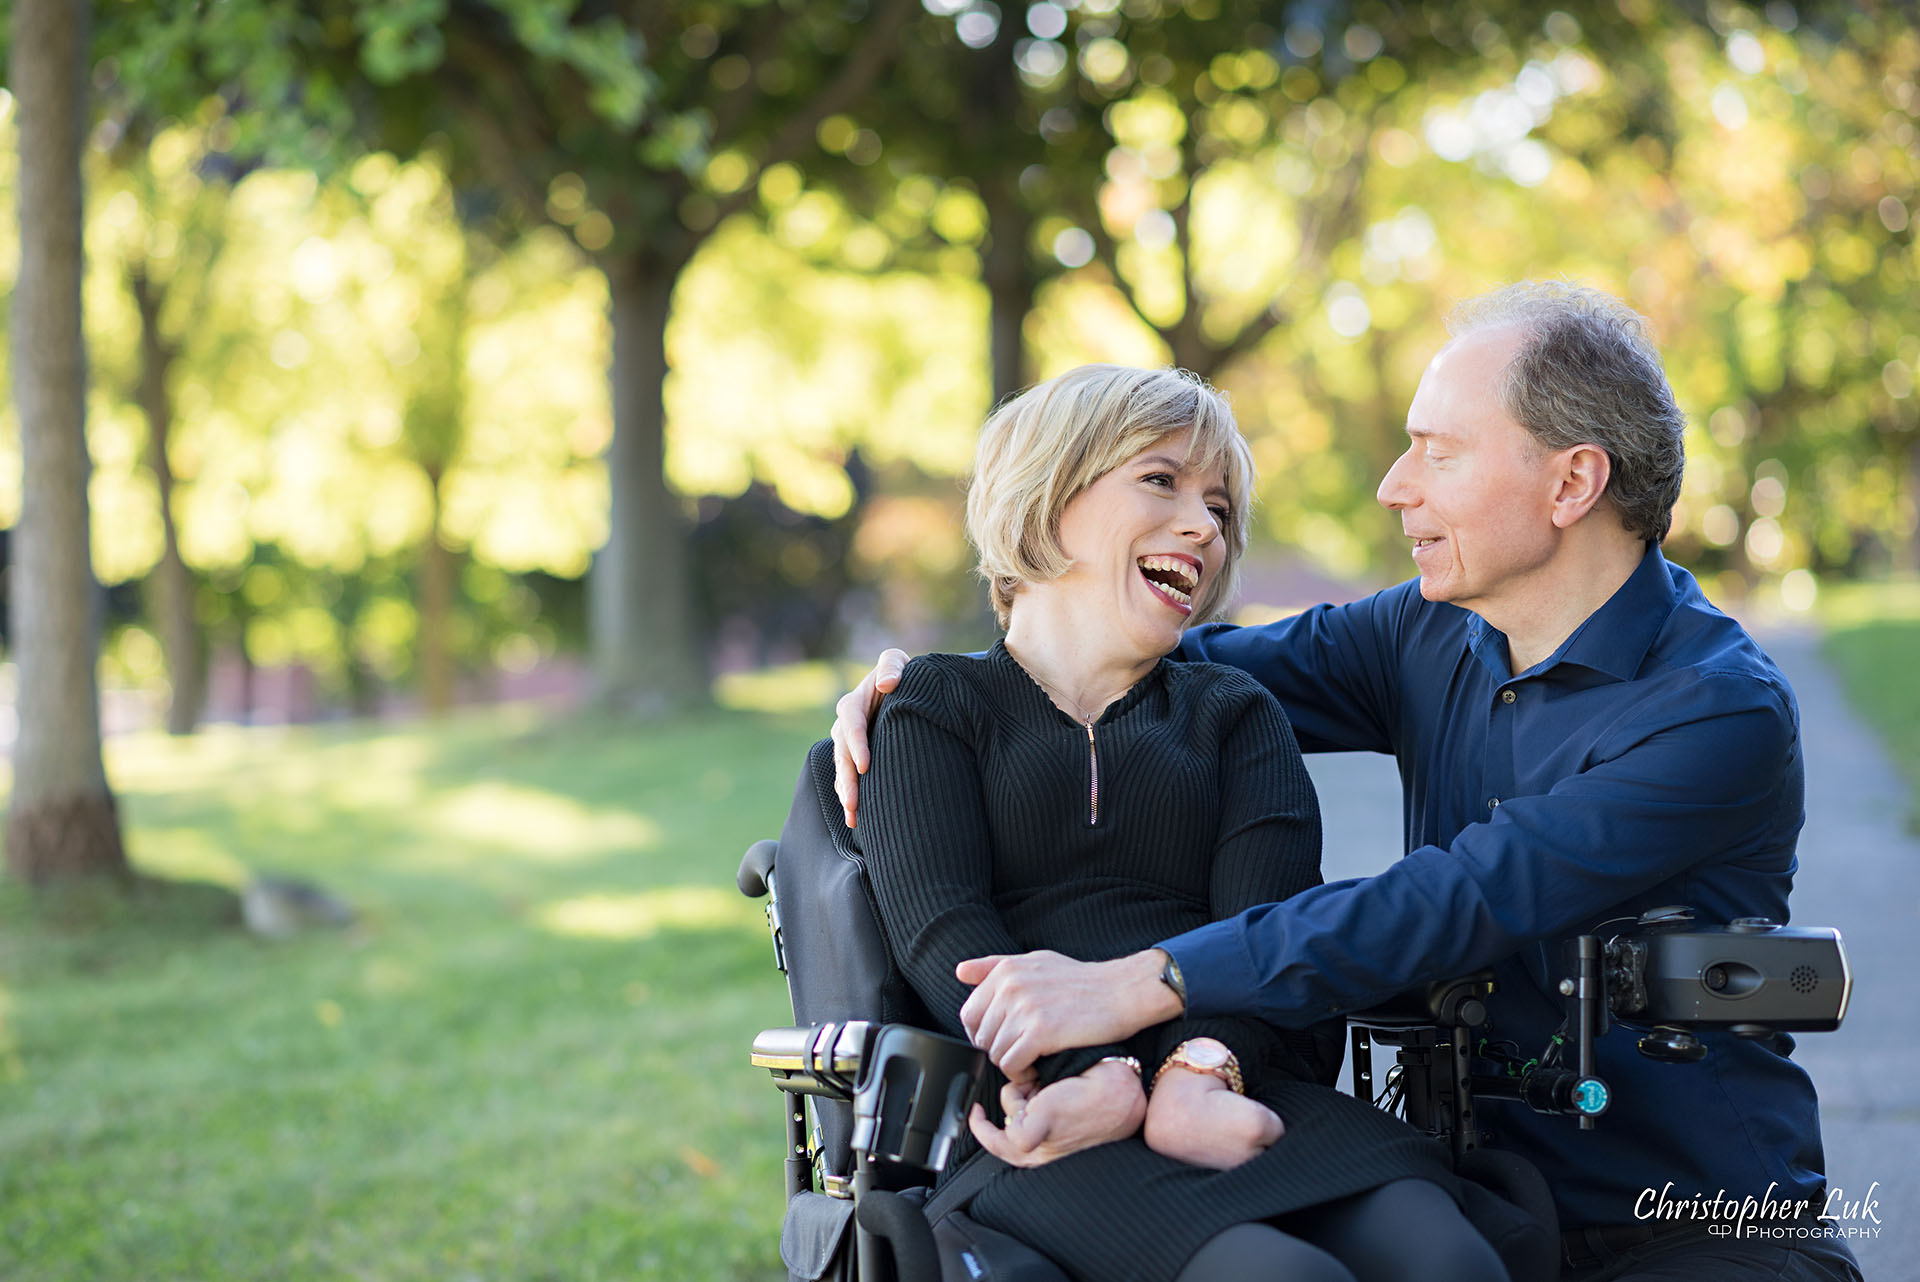 Christopher Luk Toronto Wedding Photographer Whitby Durham Engagement Session Bride Groom Candid Natural Photojournalistic Wheelchair Path Pathway Talking Together Wrap Arms Hug